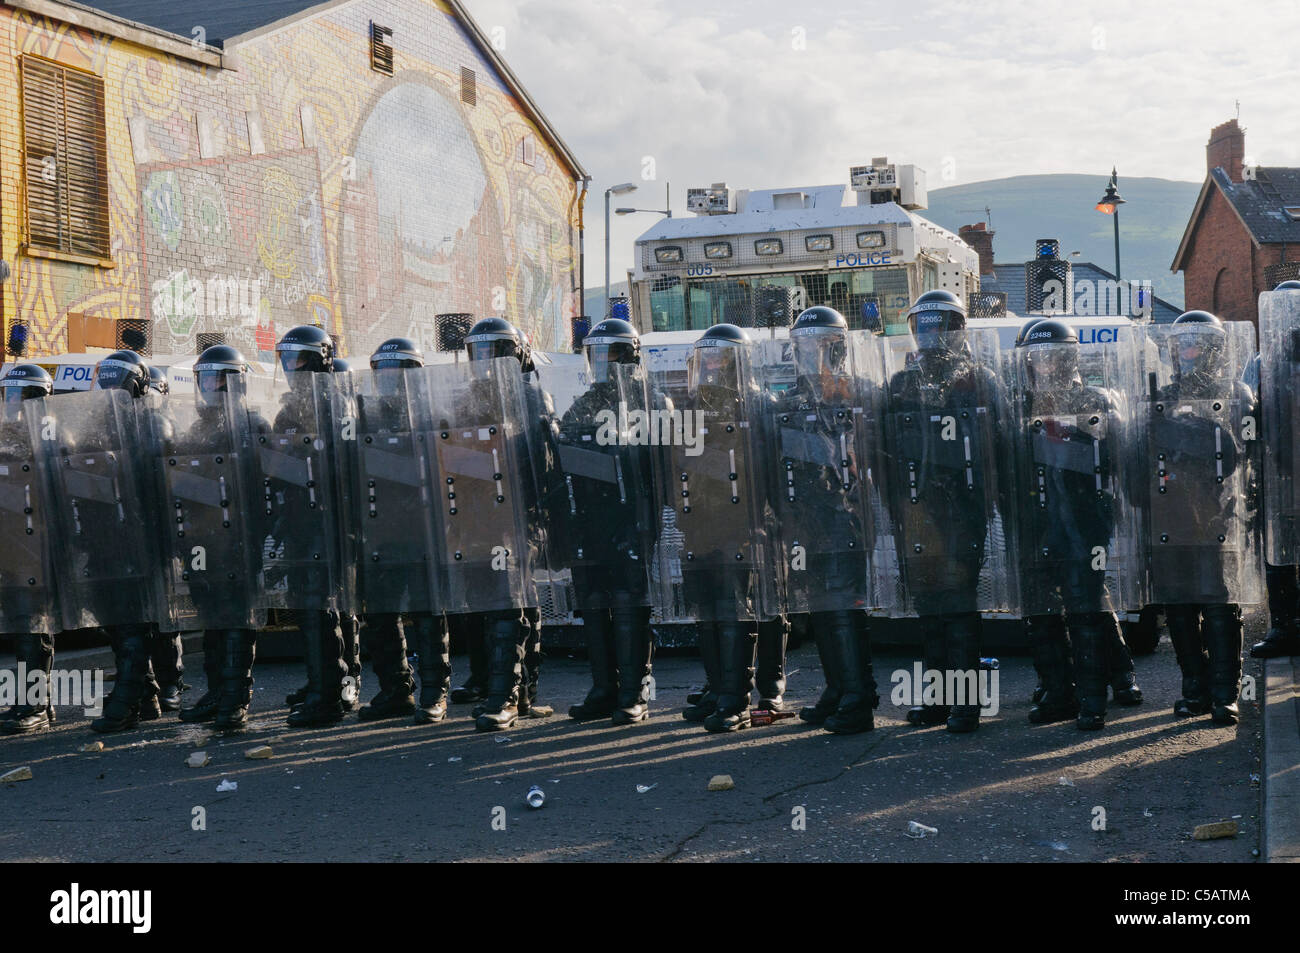 Line of PSNI Officers in riot gear, with armoured landrovers and water cannon. - Stock Image